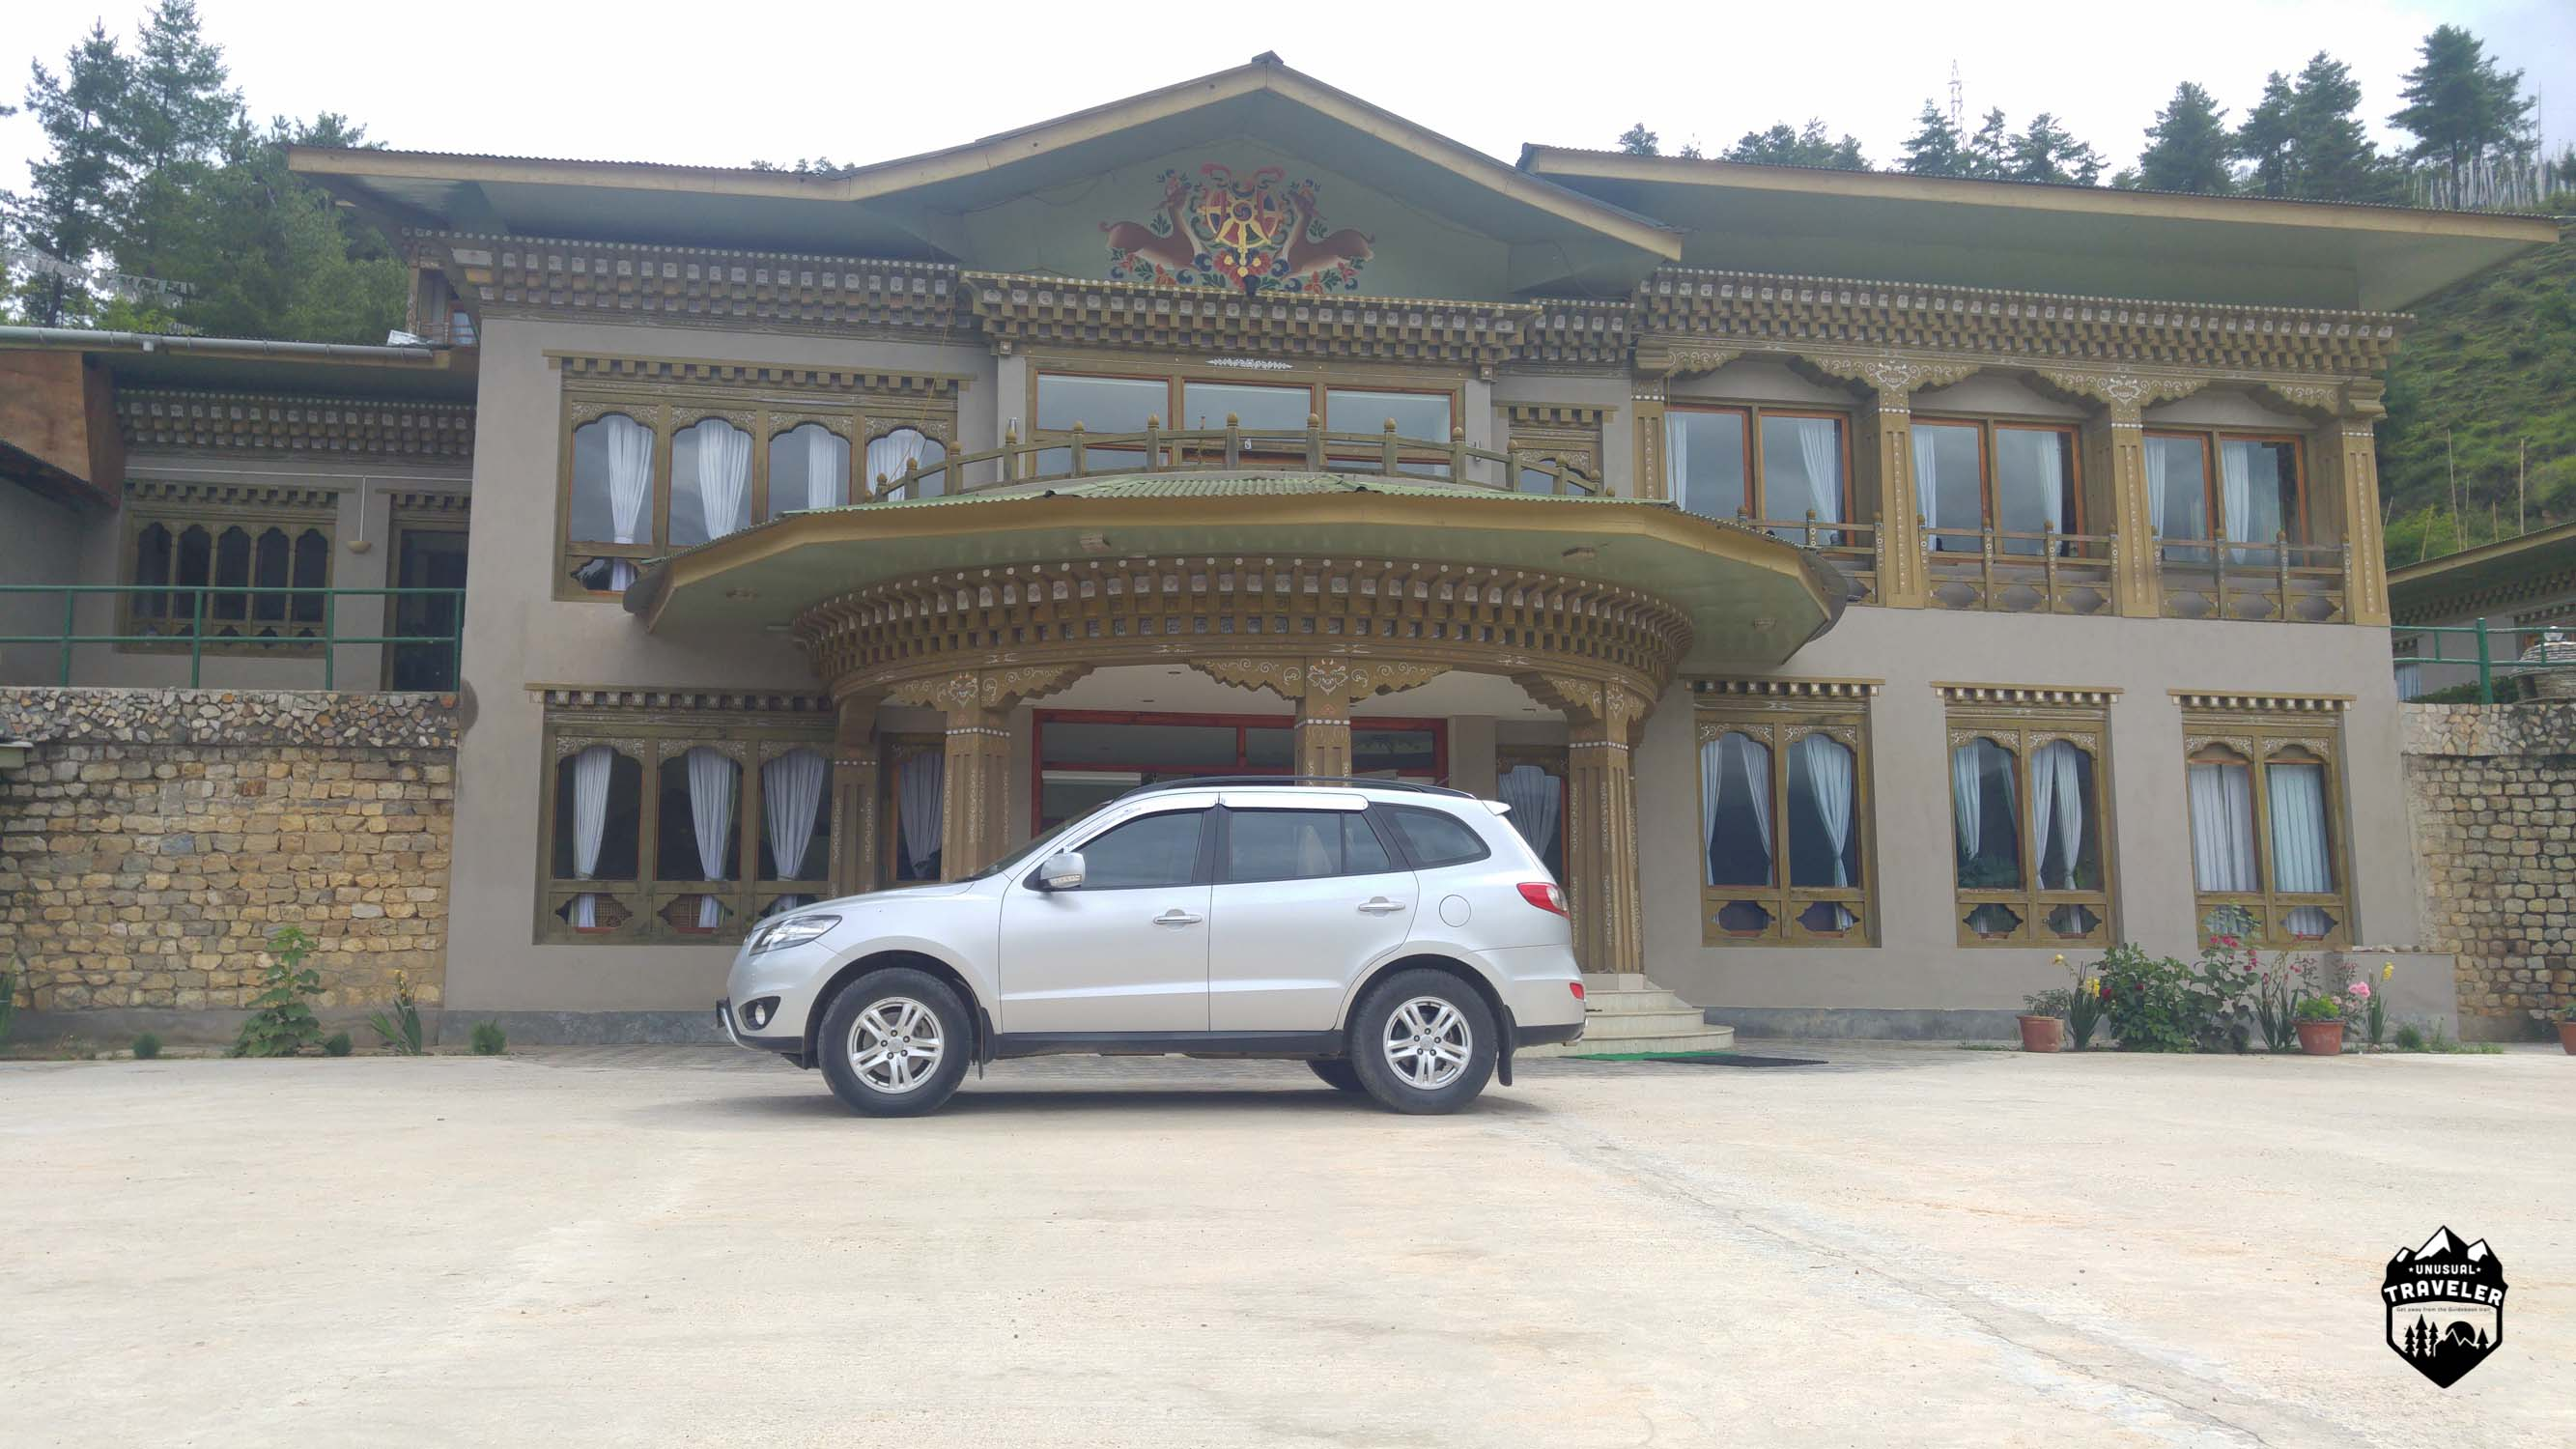 """My car"" during my stay in Bhutan, in front of my hotel in Paro."